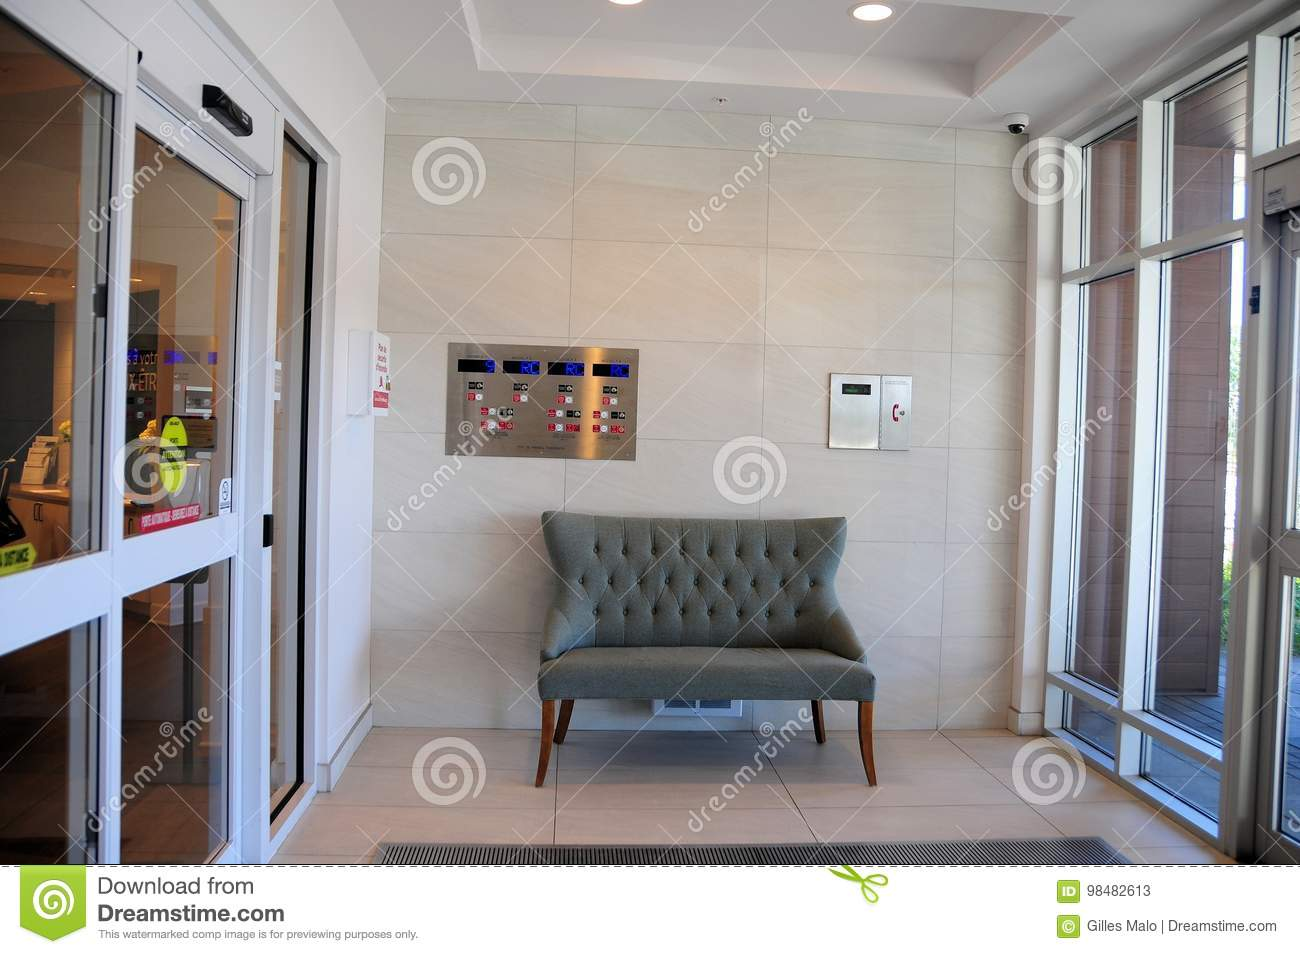 Inside Front Door Apartment On Apartment Building Indoor Front Entrance Building Indoor Front Entrance Stock Image Of